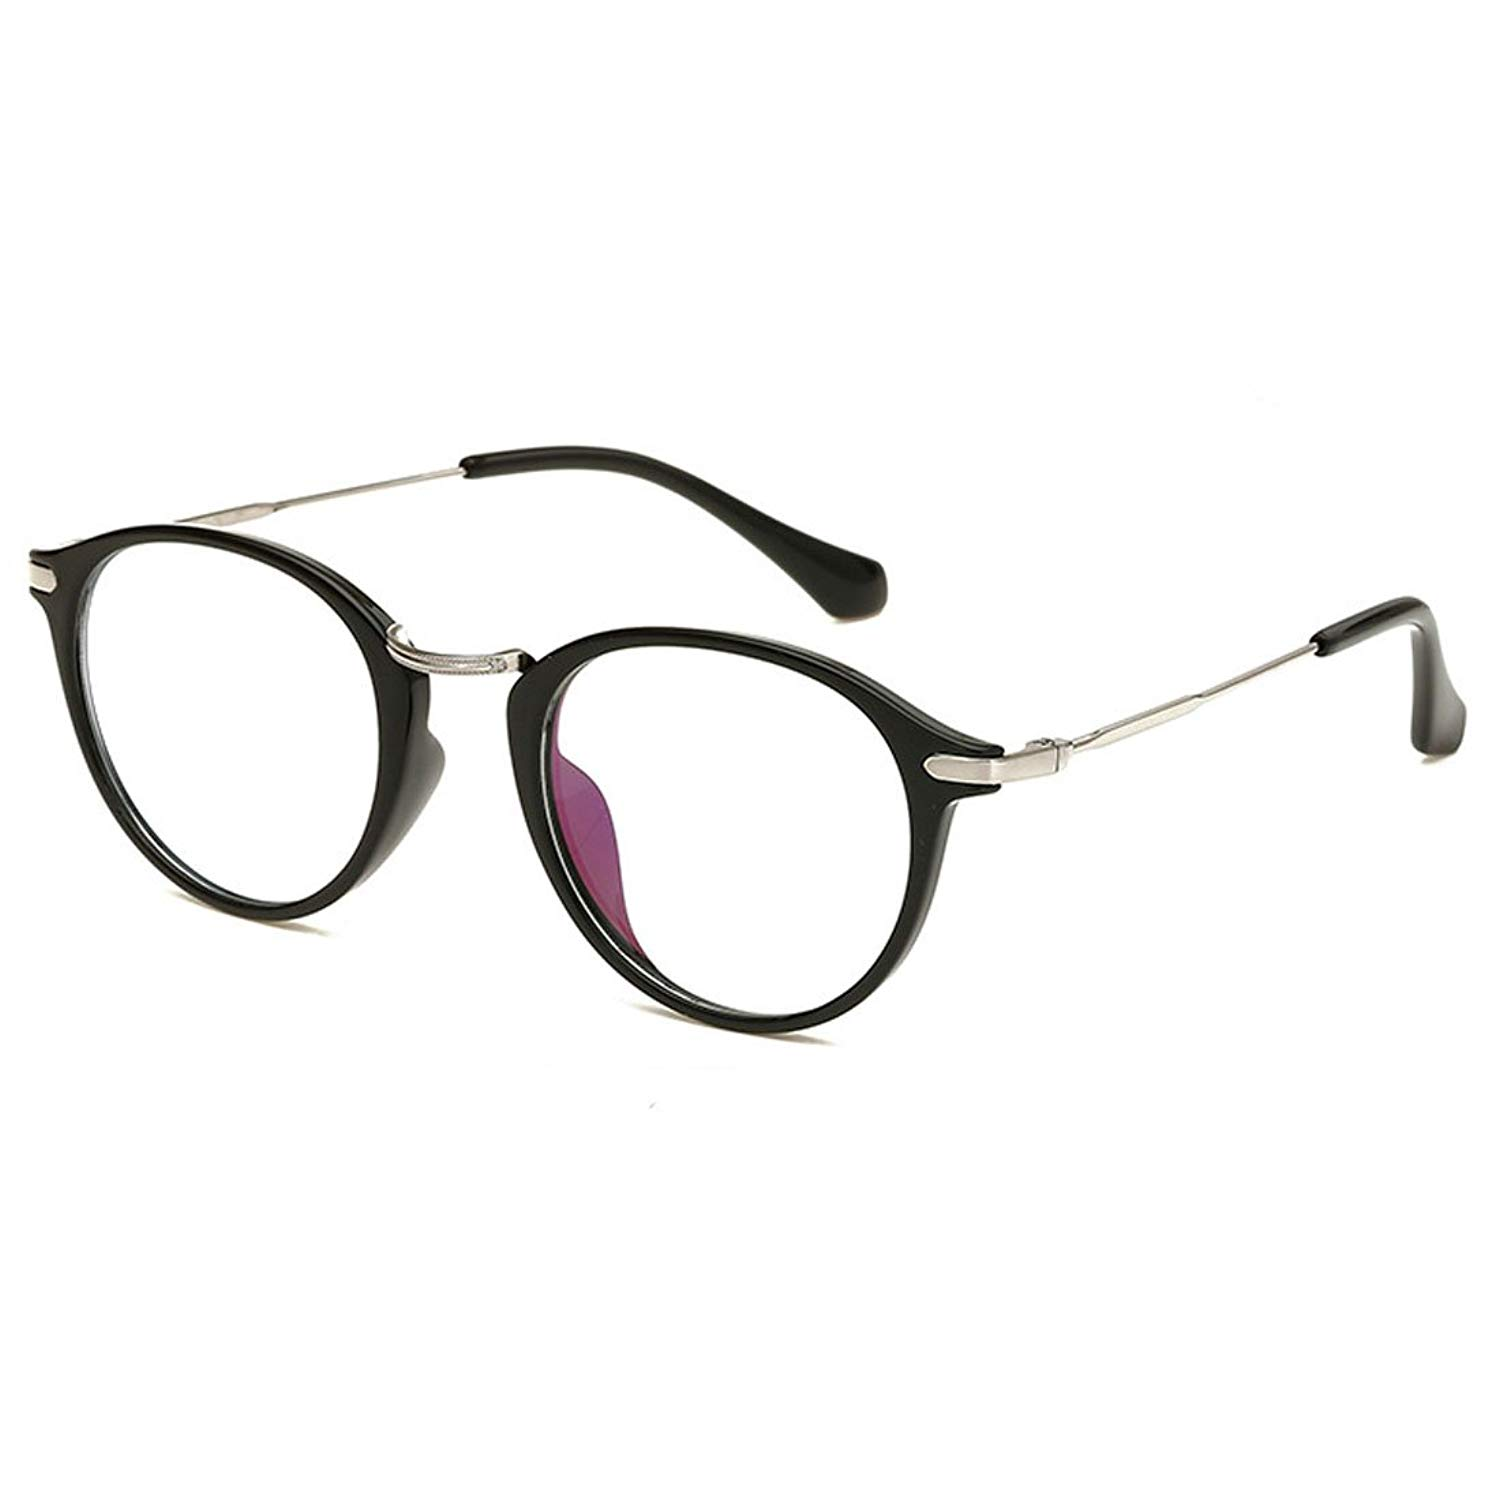 4d462bf3a2a3a Get Quotations · D.King Vintage Inspired Horn Rimmed Round Clear Lens  Glasses Eyeglasses Frames